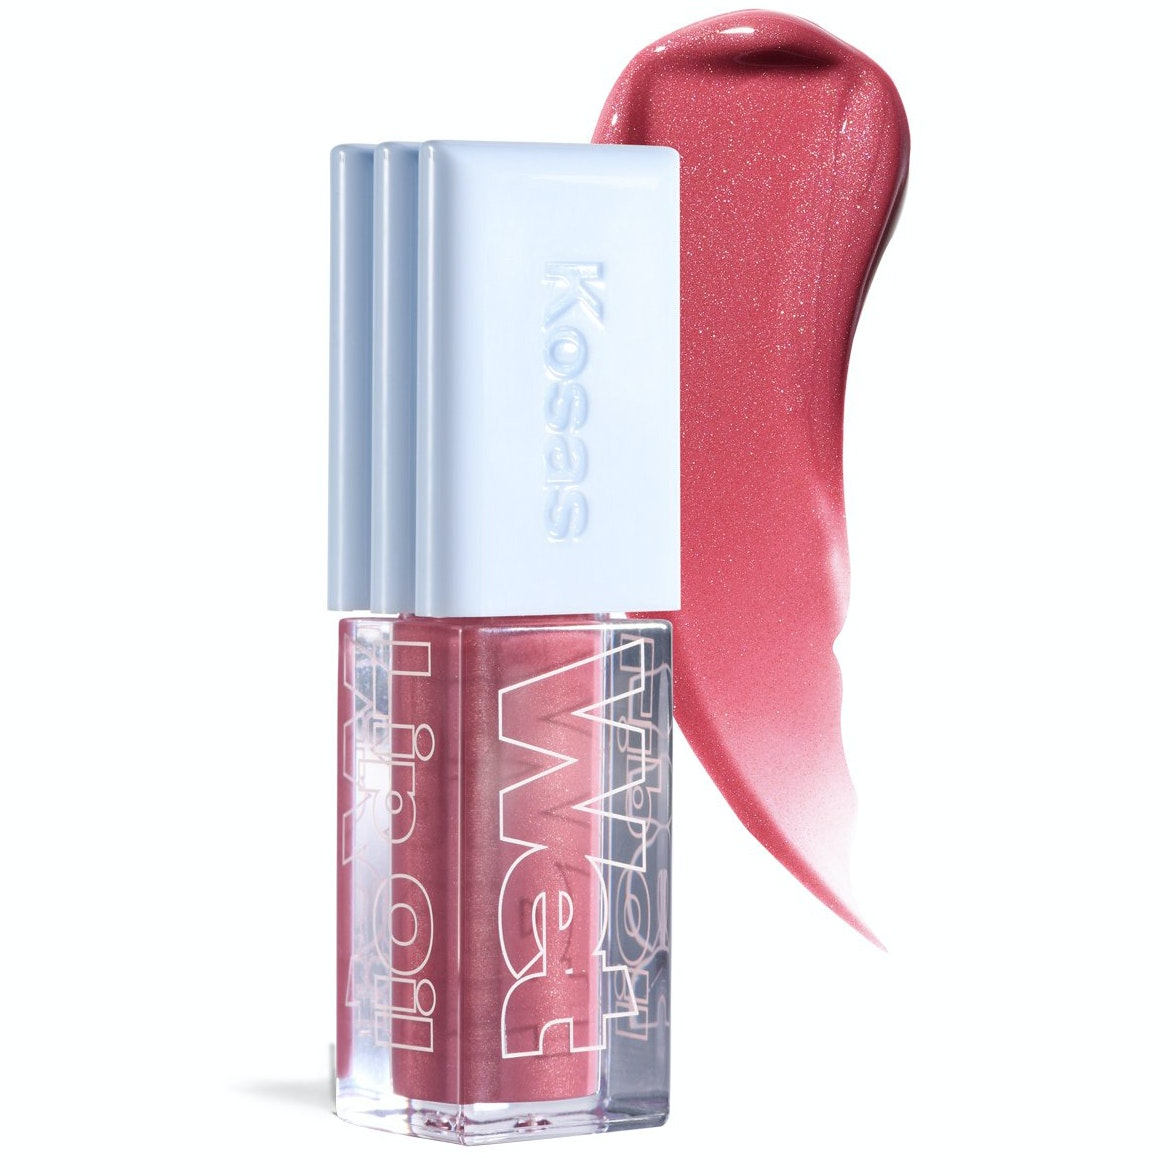 Kosas® Wet Lip Oil Gloss in Malibu™